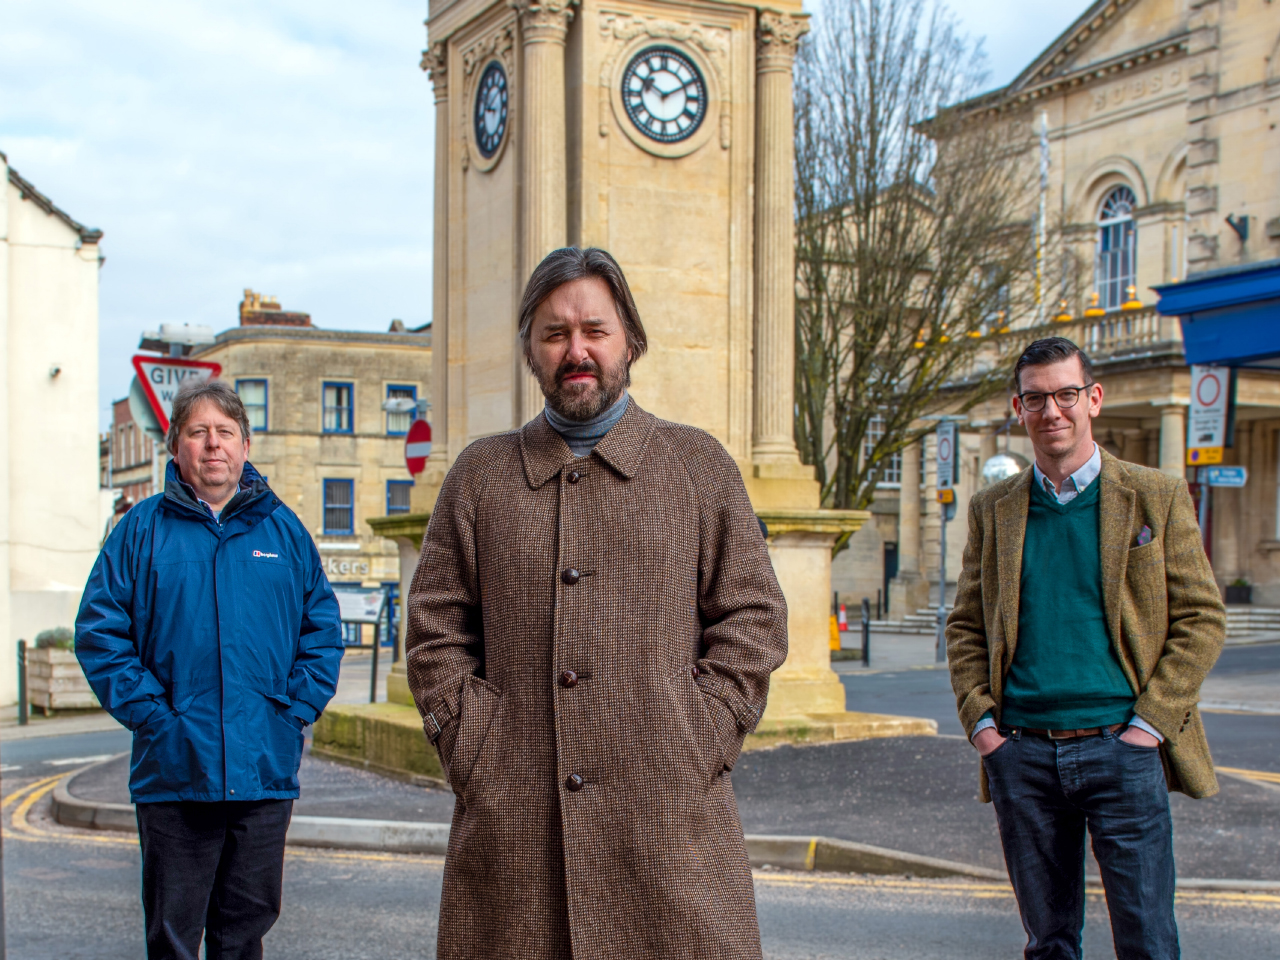 Stroud Times, an independent community-based news website, launches today